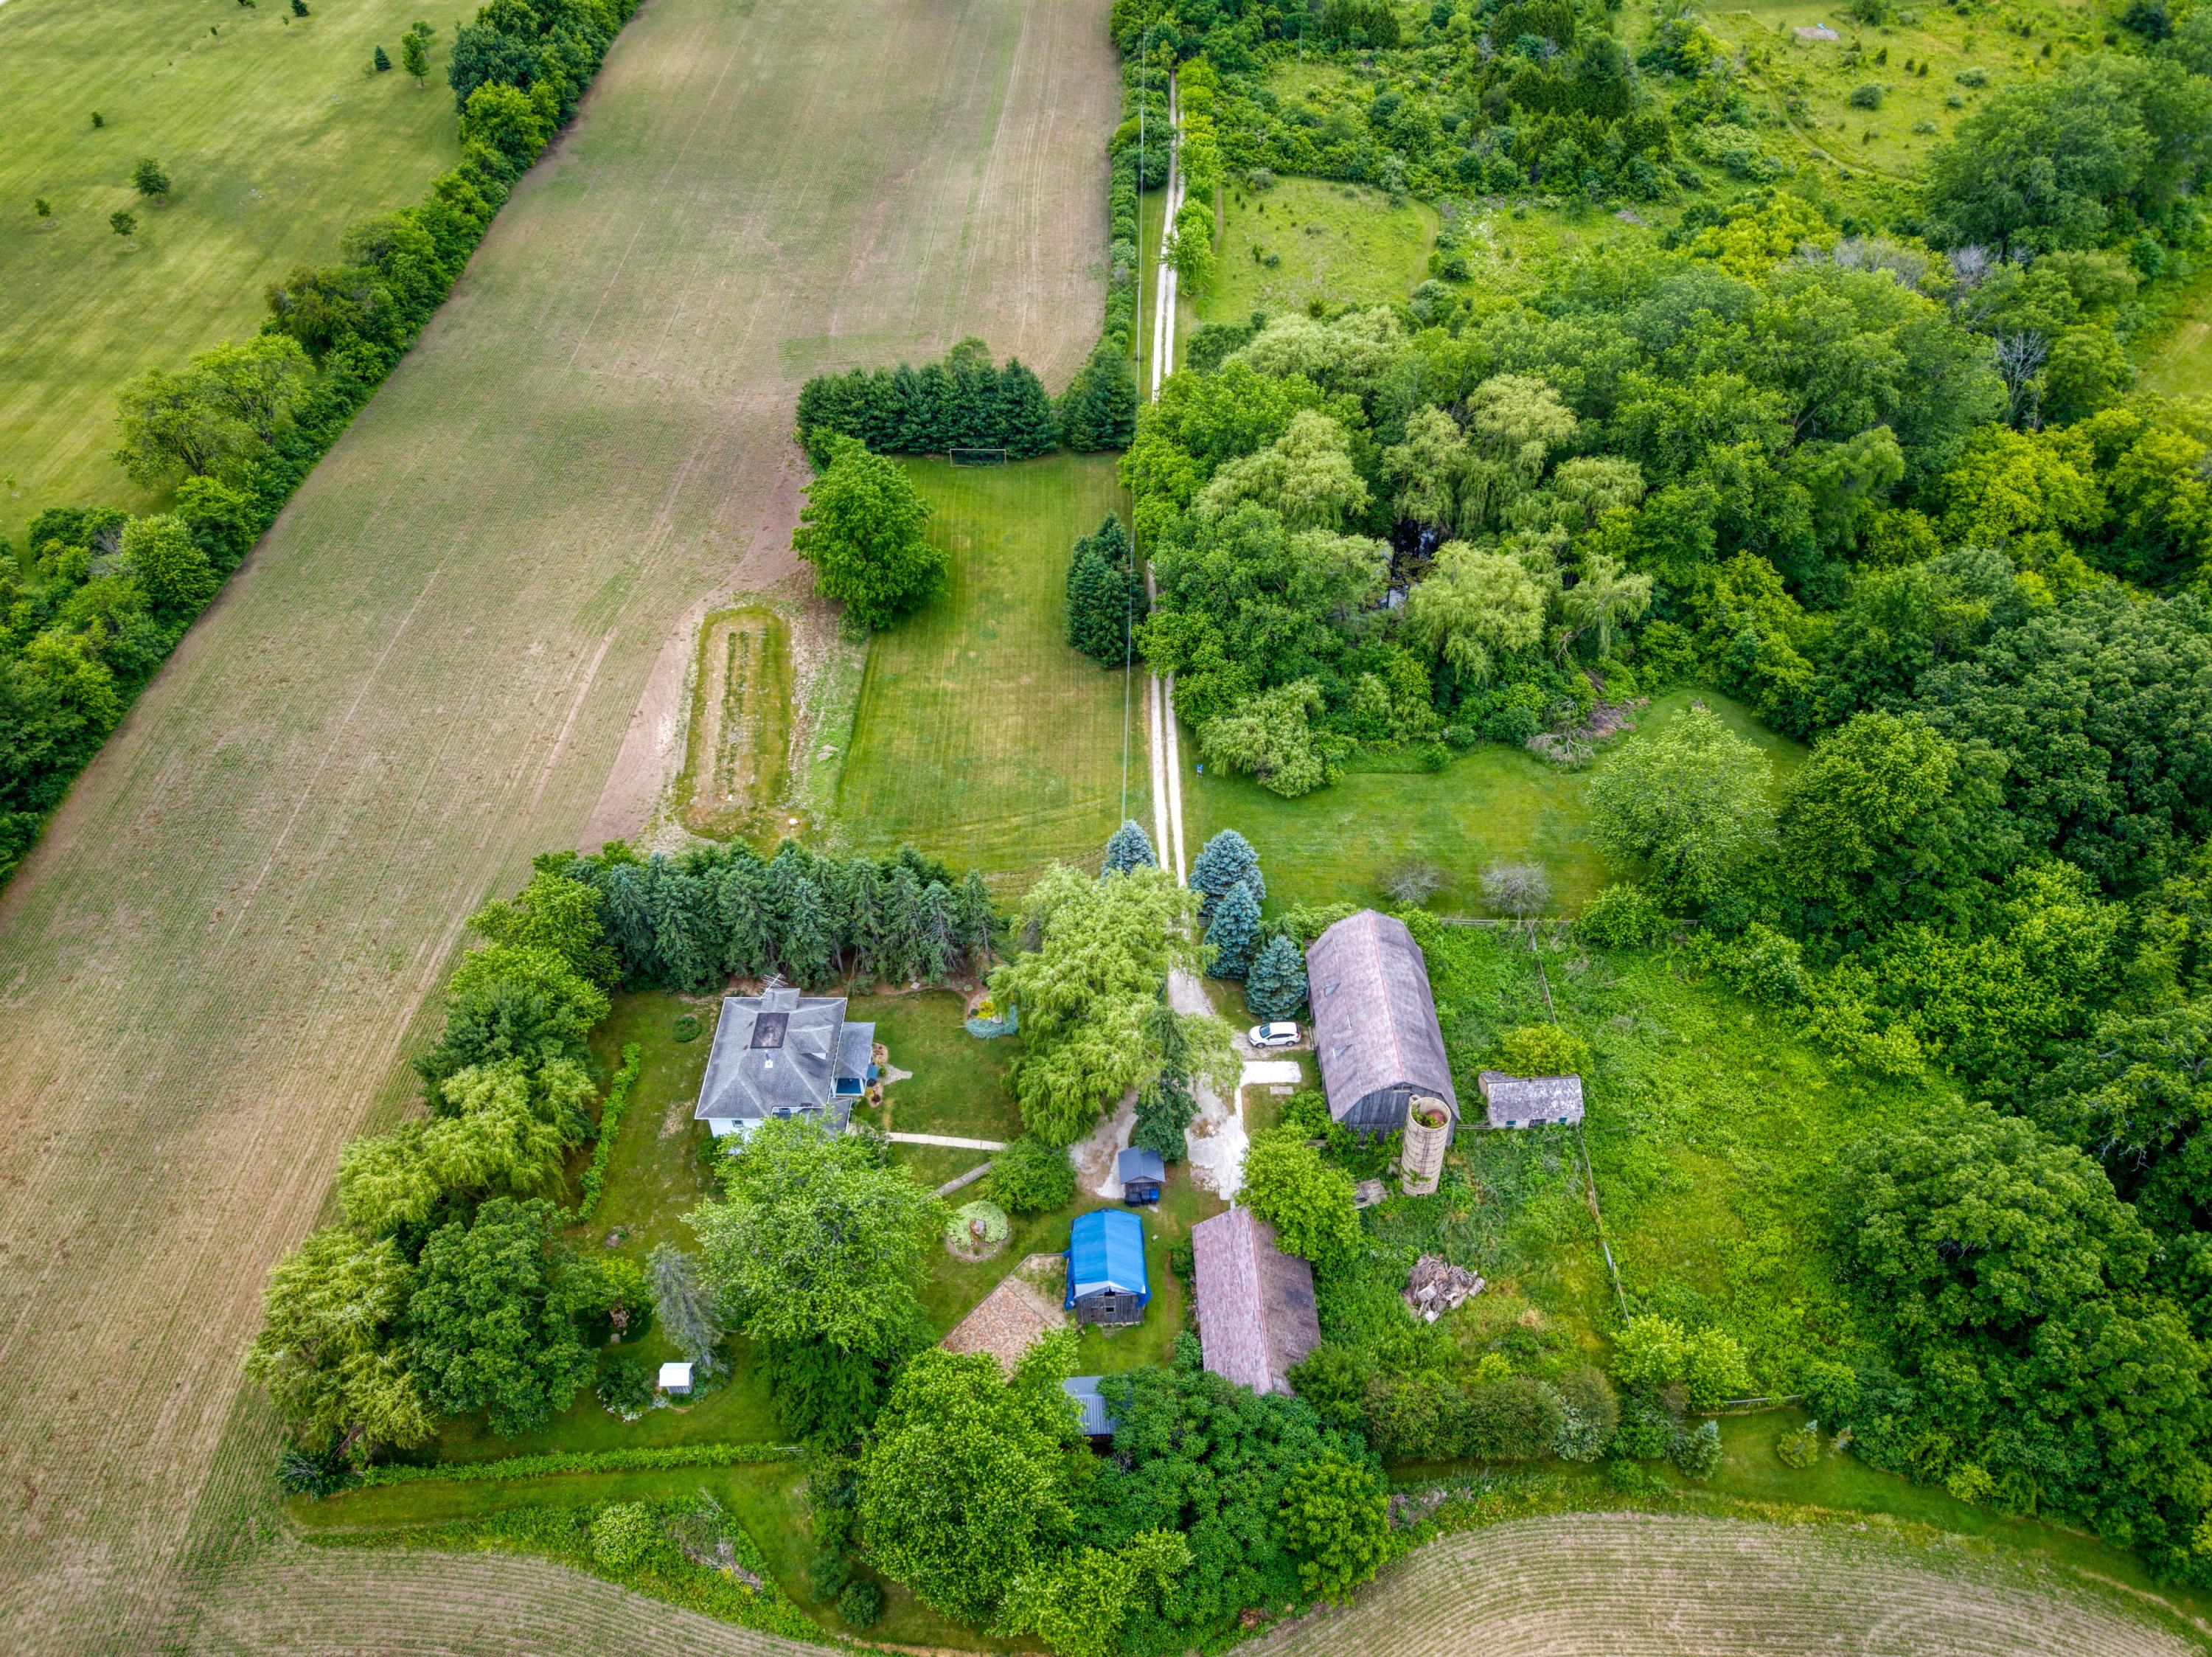 2233 47th Ave, Somers, Wisconsin 53144, 5 Bedrooms Bedrooms, 10 Rooms Rooms,1 BathroomBathrooms,Single-family,For Sale,47th Ave,1721928